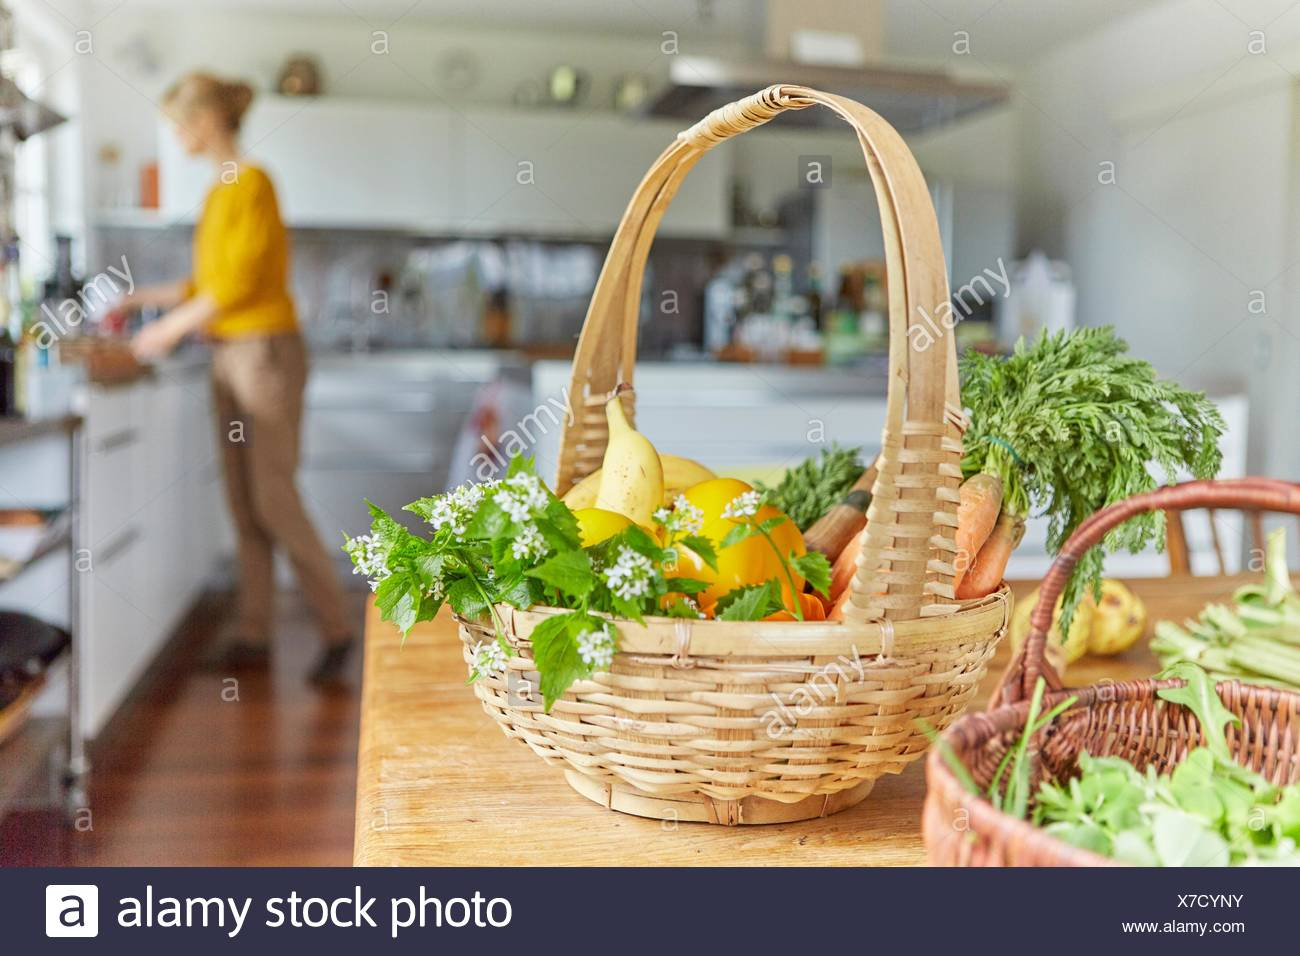 Garden produce, in baskets on table in kitchen, mature woman working in background - Stock Image